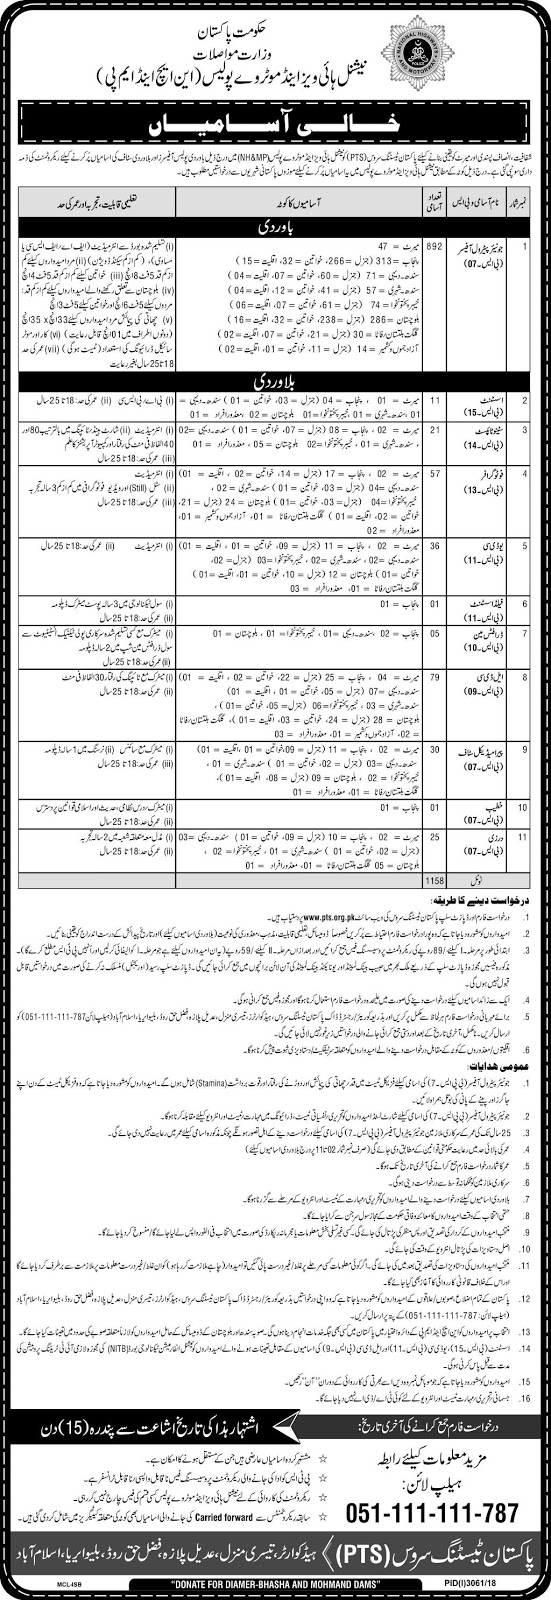 Motorway Police Jobs : Latest Vacancies Announced in National Highways And Motorway Police 06 Jan 2019 by Government of Pakistan 6 January 2019 - Naya Pakistan Jobs